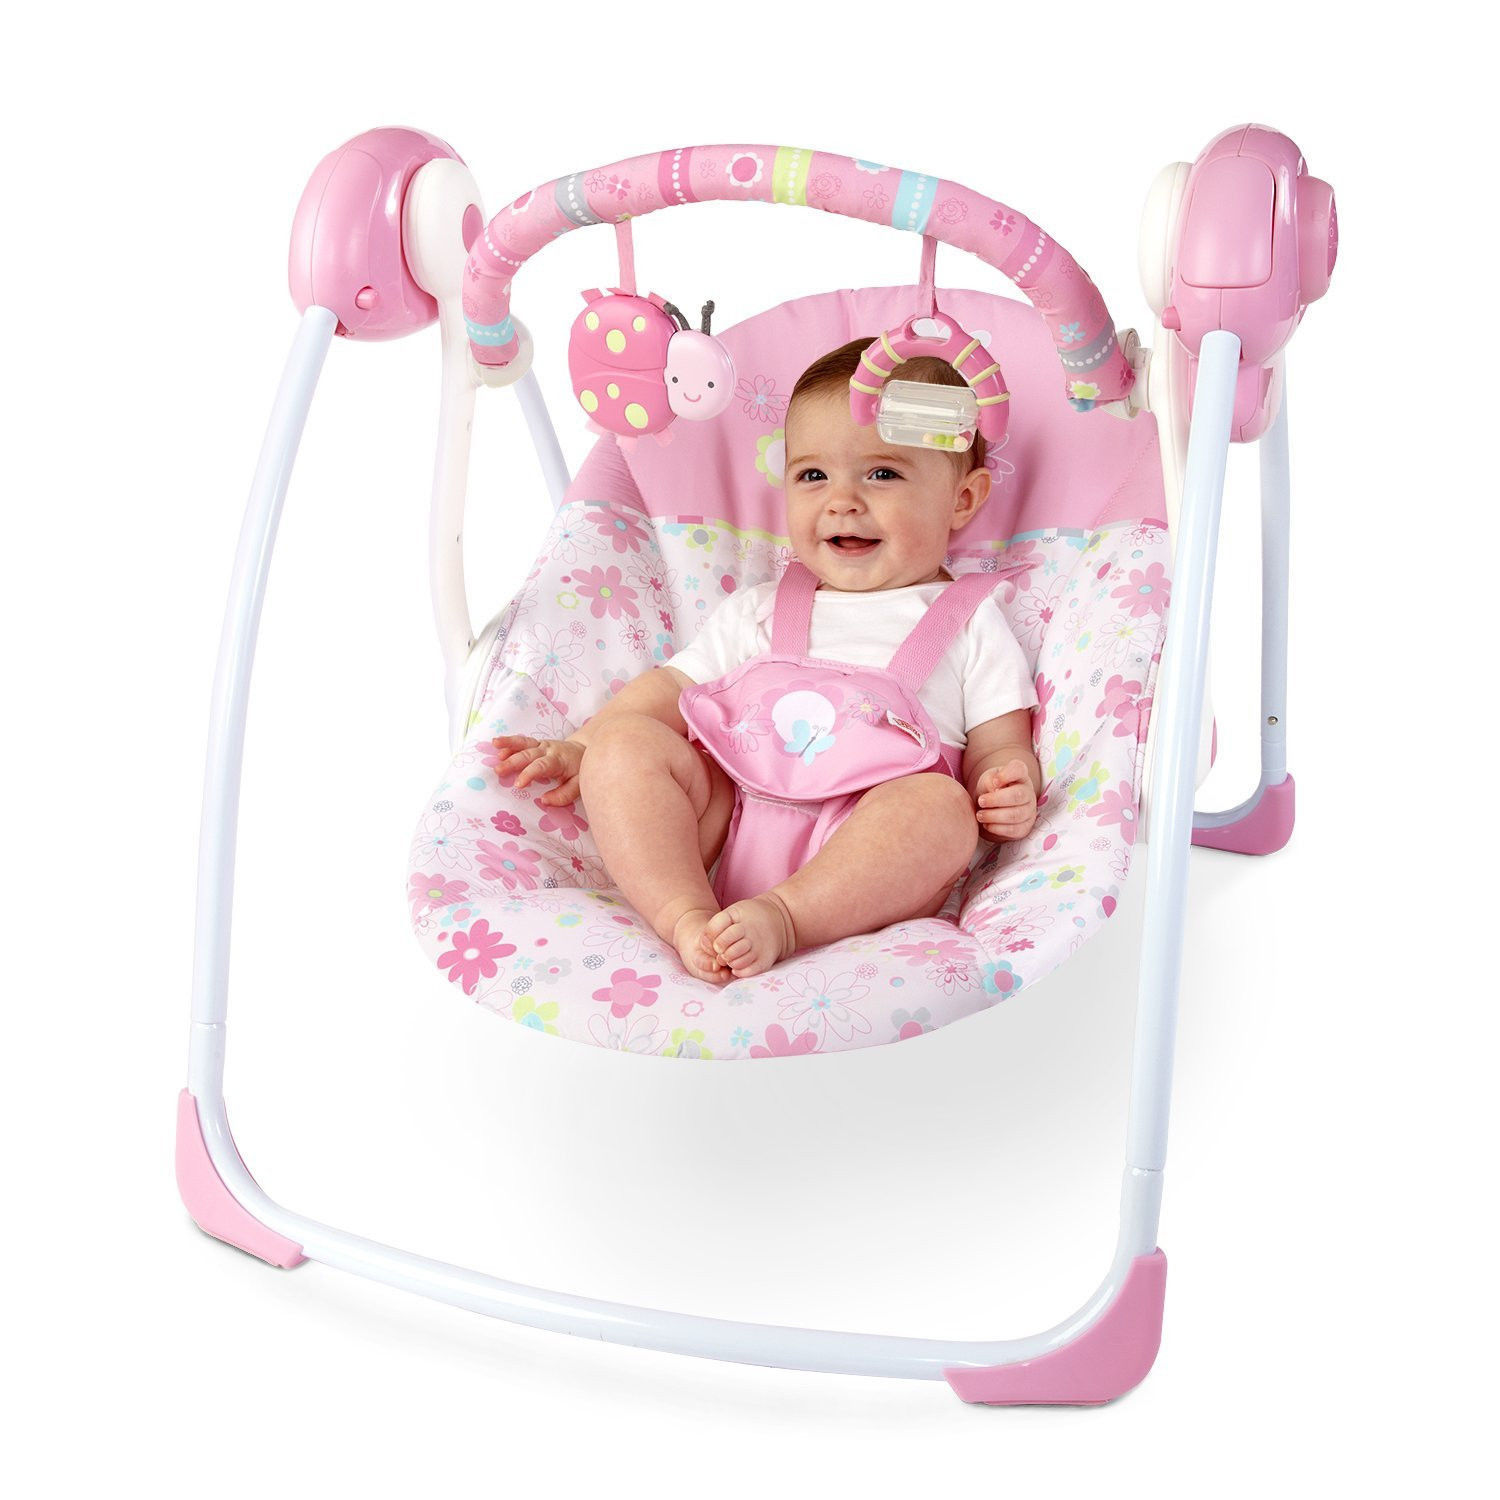 Baby Girl Portable Pink Swing 6 Speeds Amp 2 Reclines Mobile